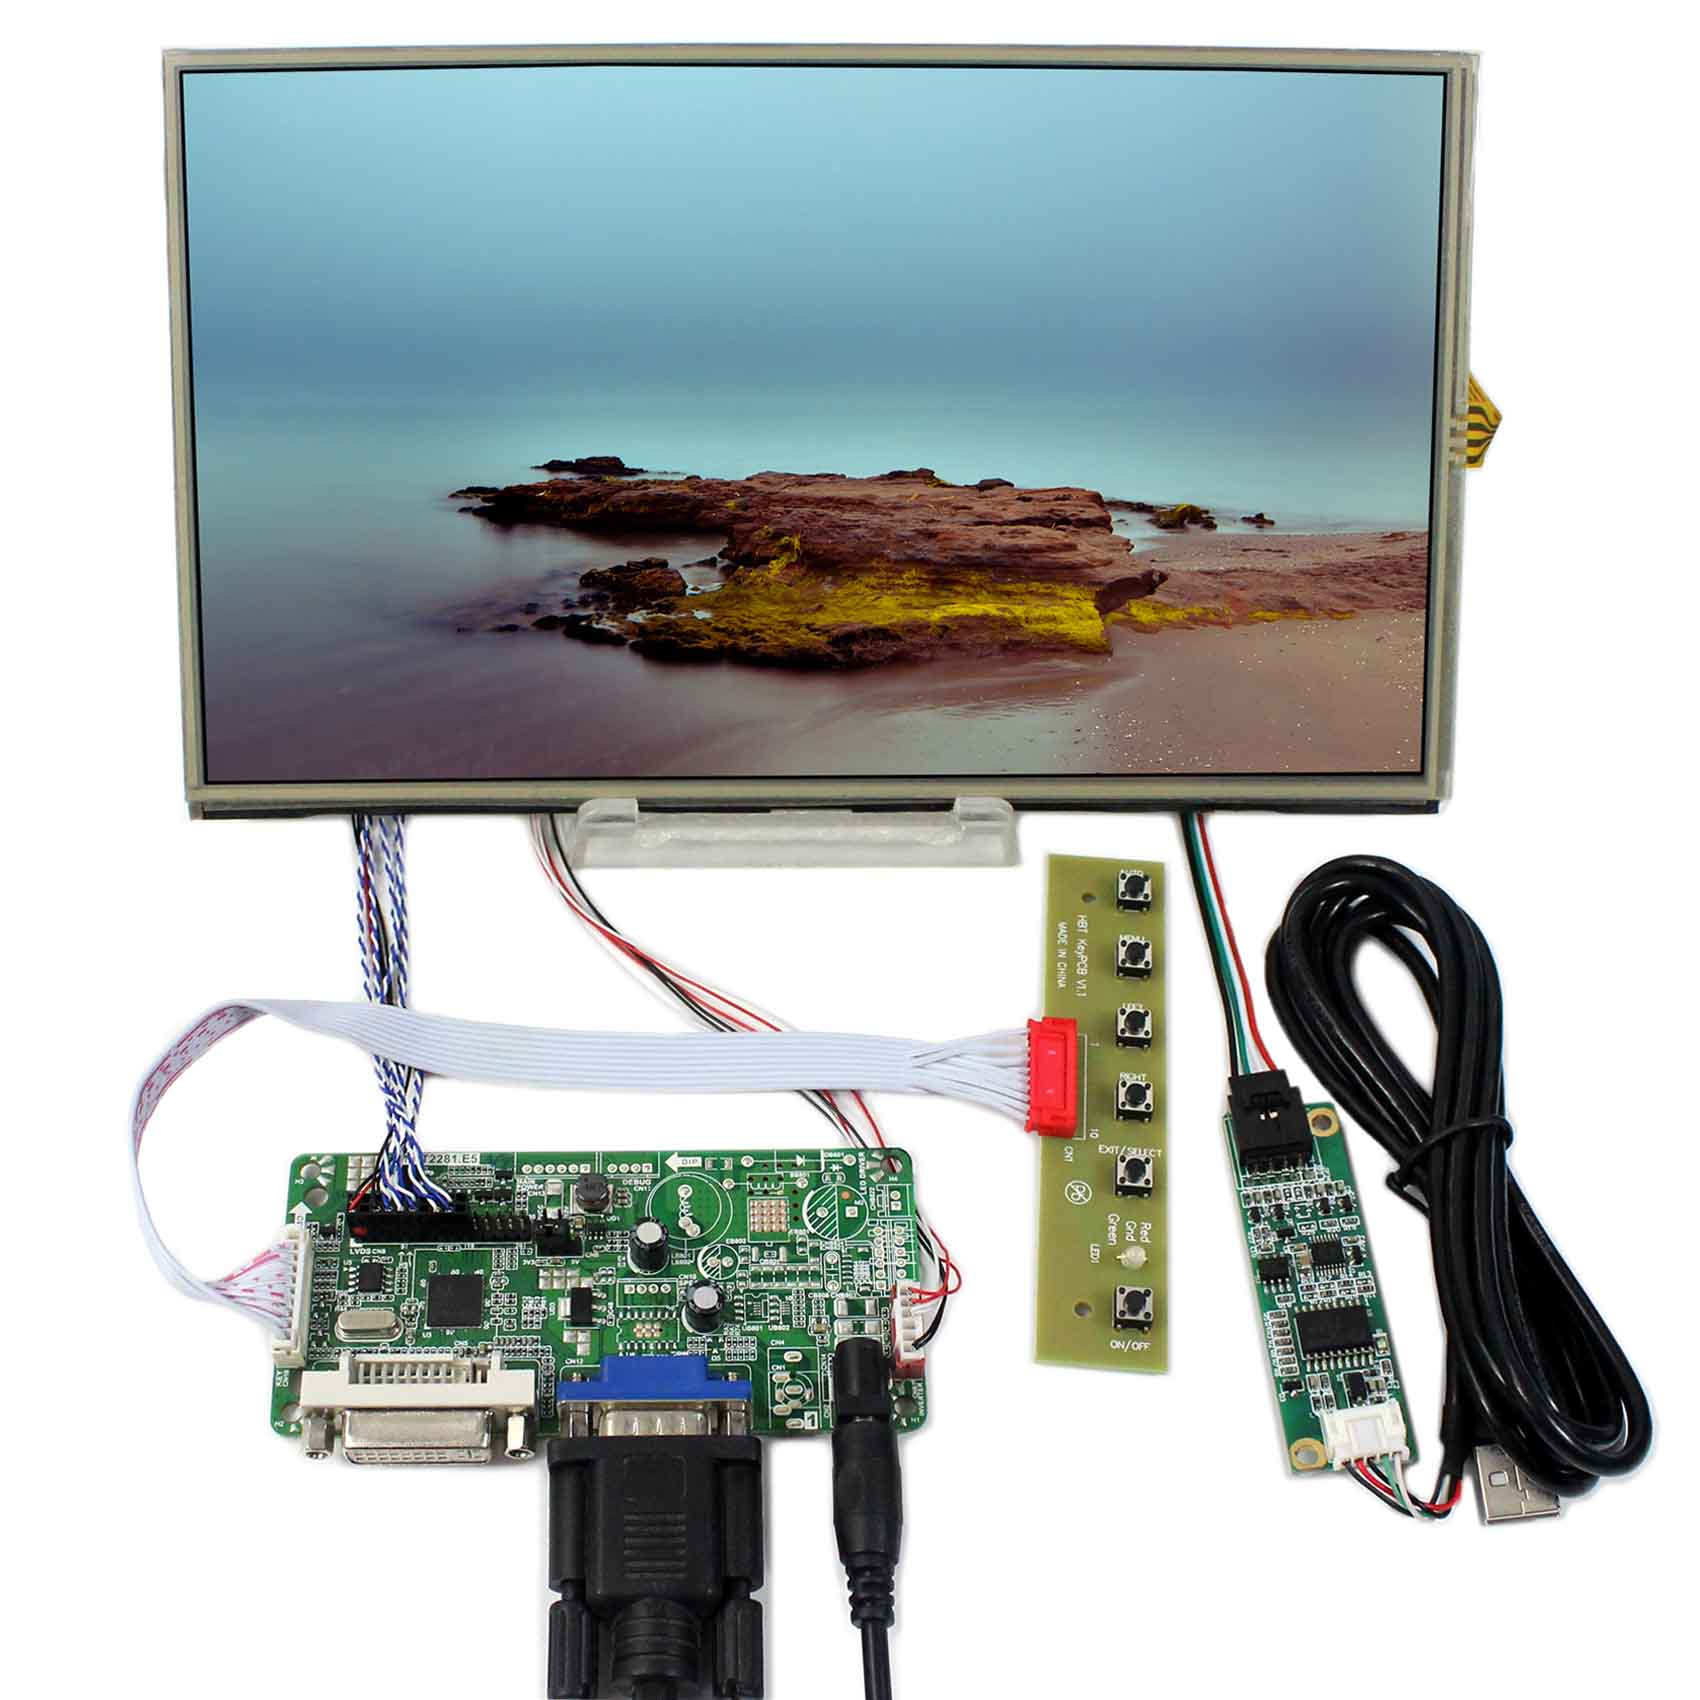 DVI VGA Controller Board With 10.1inch 1366x768 B101XAN01 Touch LCD ScreenDVI VGA Controller Board With 10.1inch 1366x768 B101XAN01 Touch LCD Screen